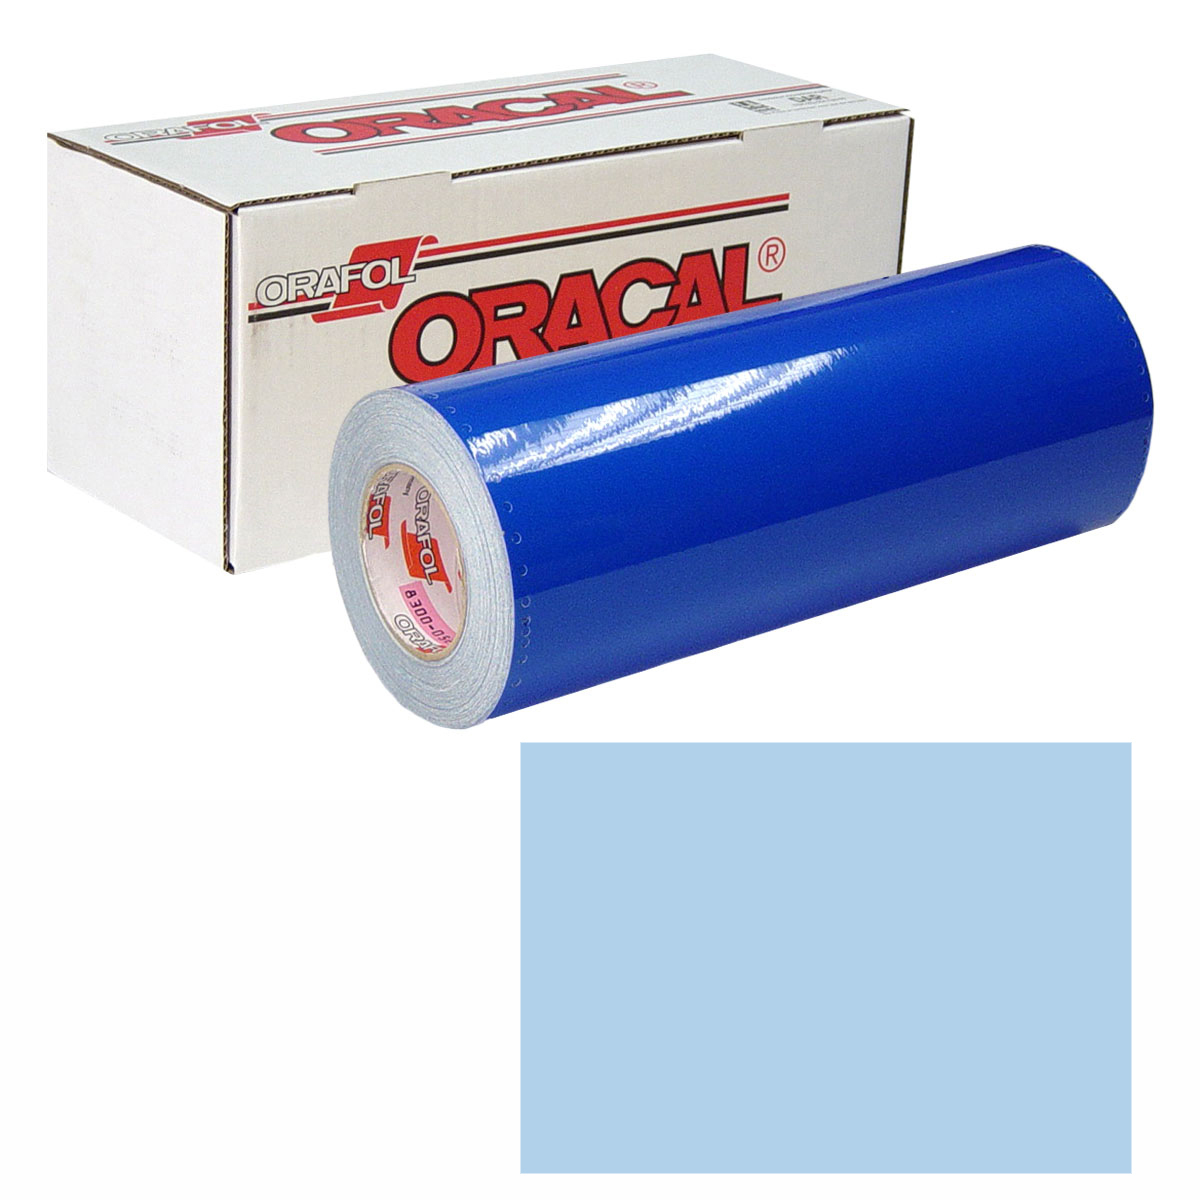 ORACAL 631 Unp 30in X 50yd 172 Powder Blue